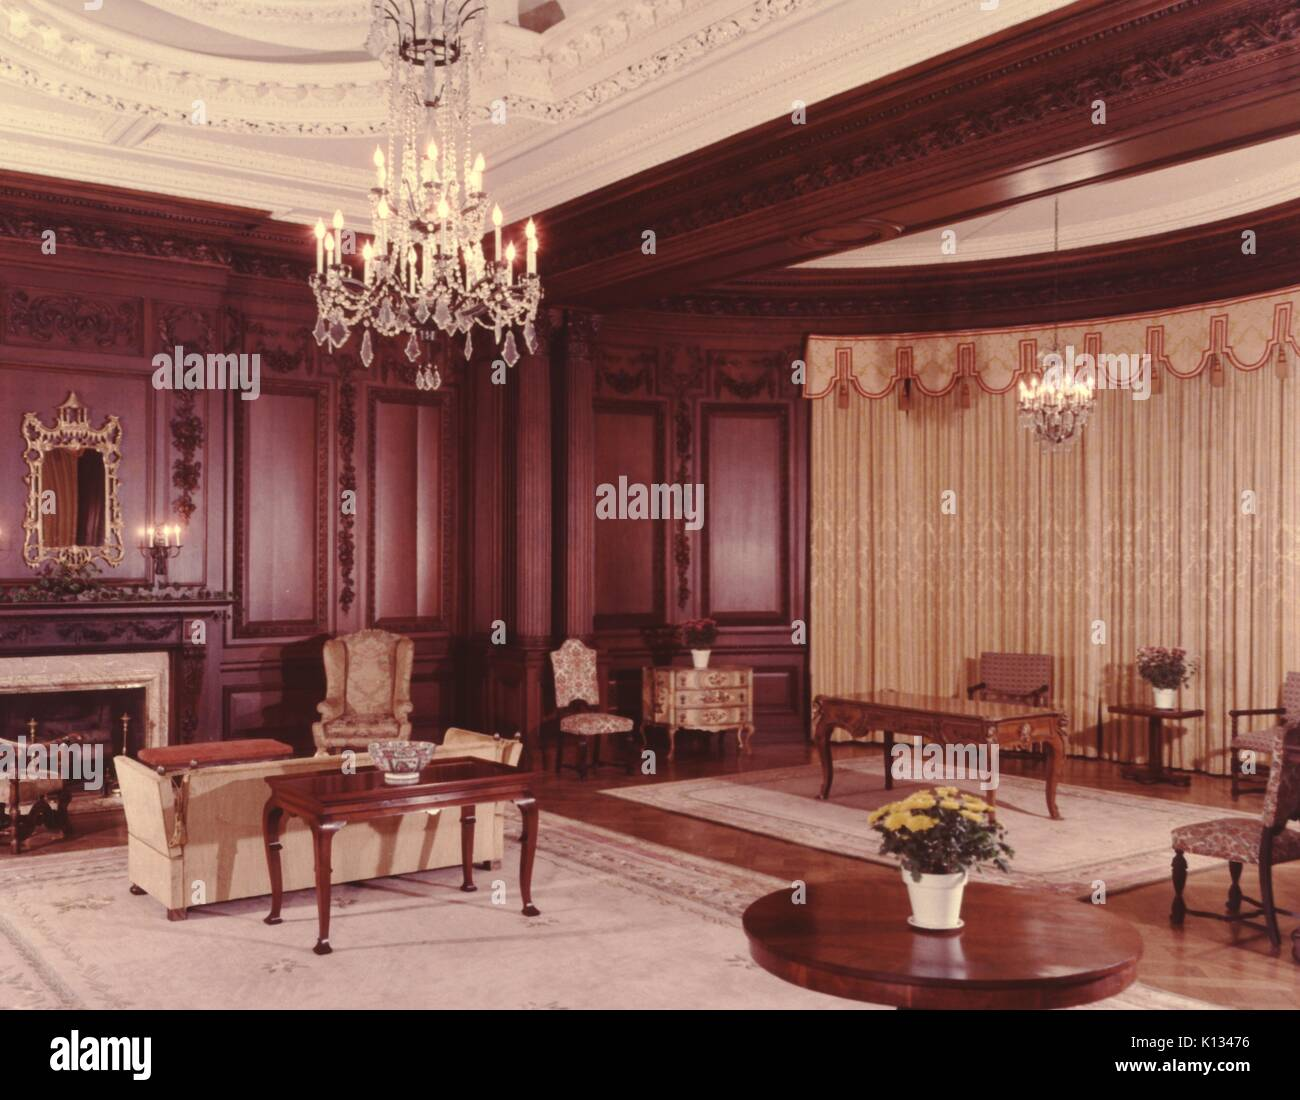 Oak Room, With Wood Paneling, Fireplace And Chairs At Casa Loma, A Gothic  Revival Mansion Patterned After A Castle, Toronto, Ontario, Canada, 1967.